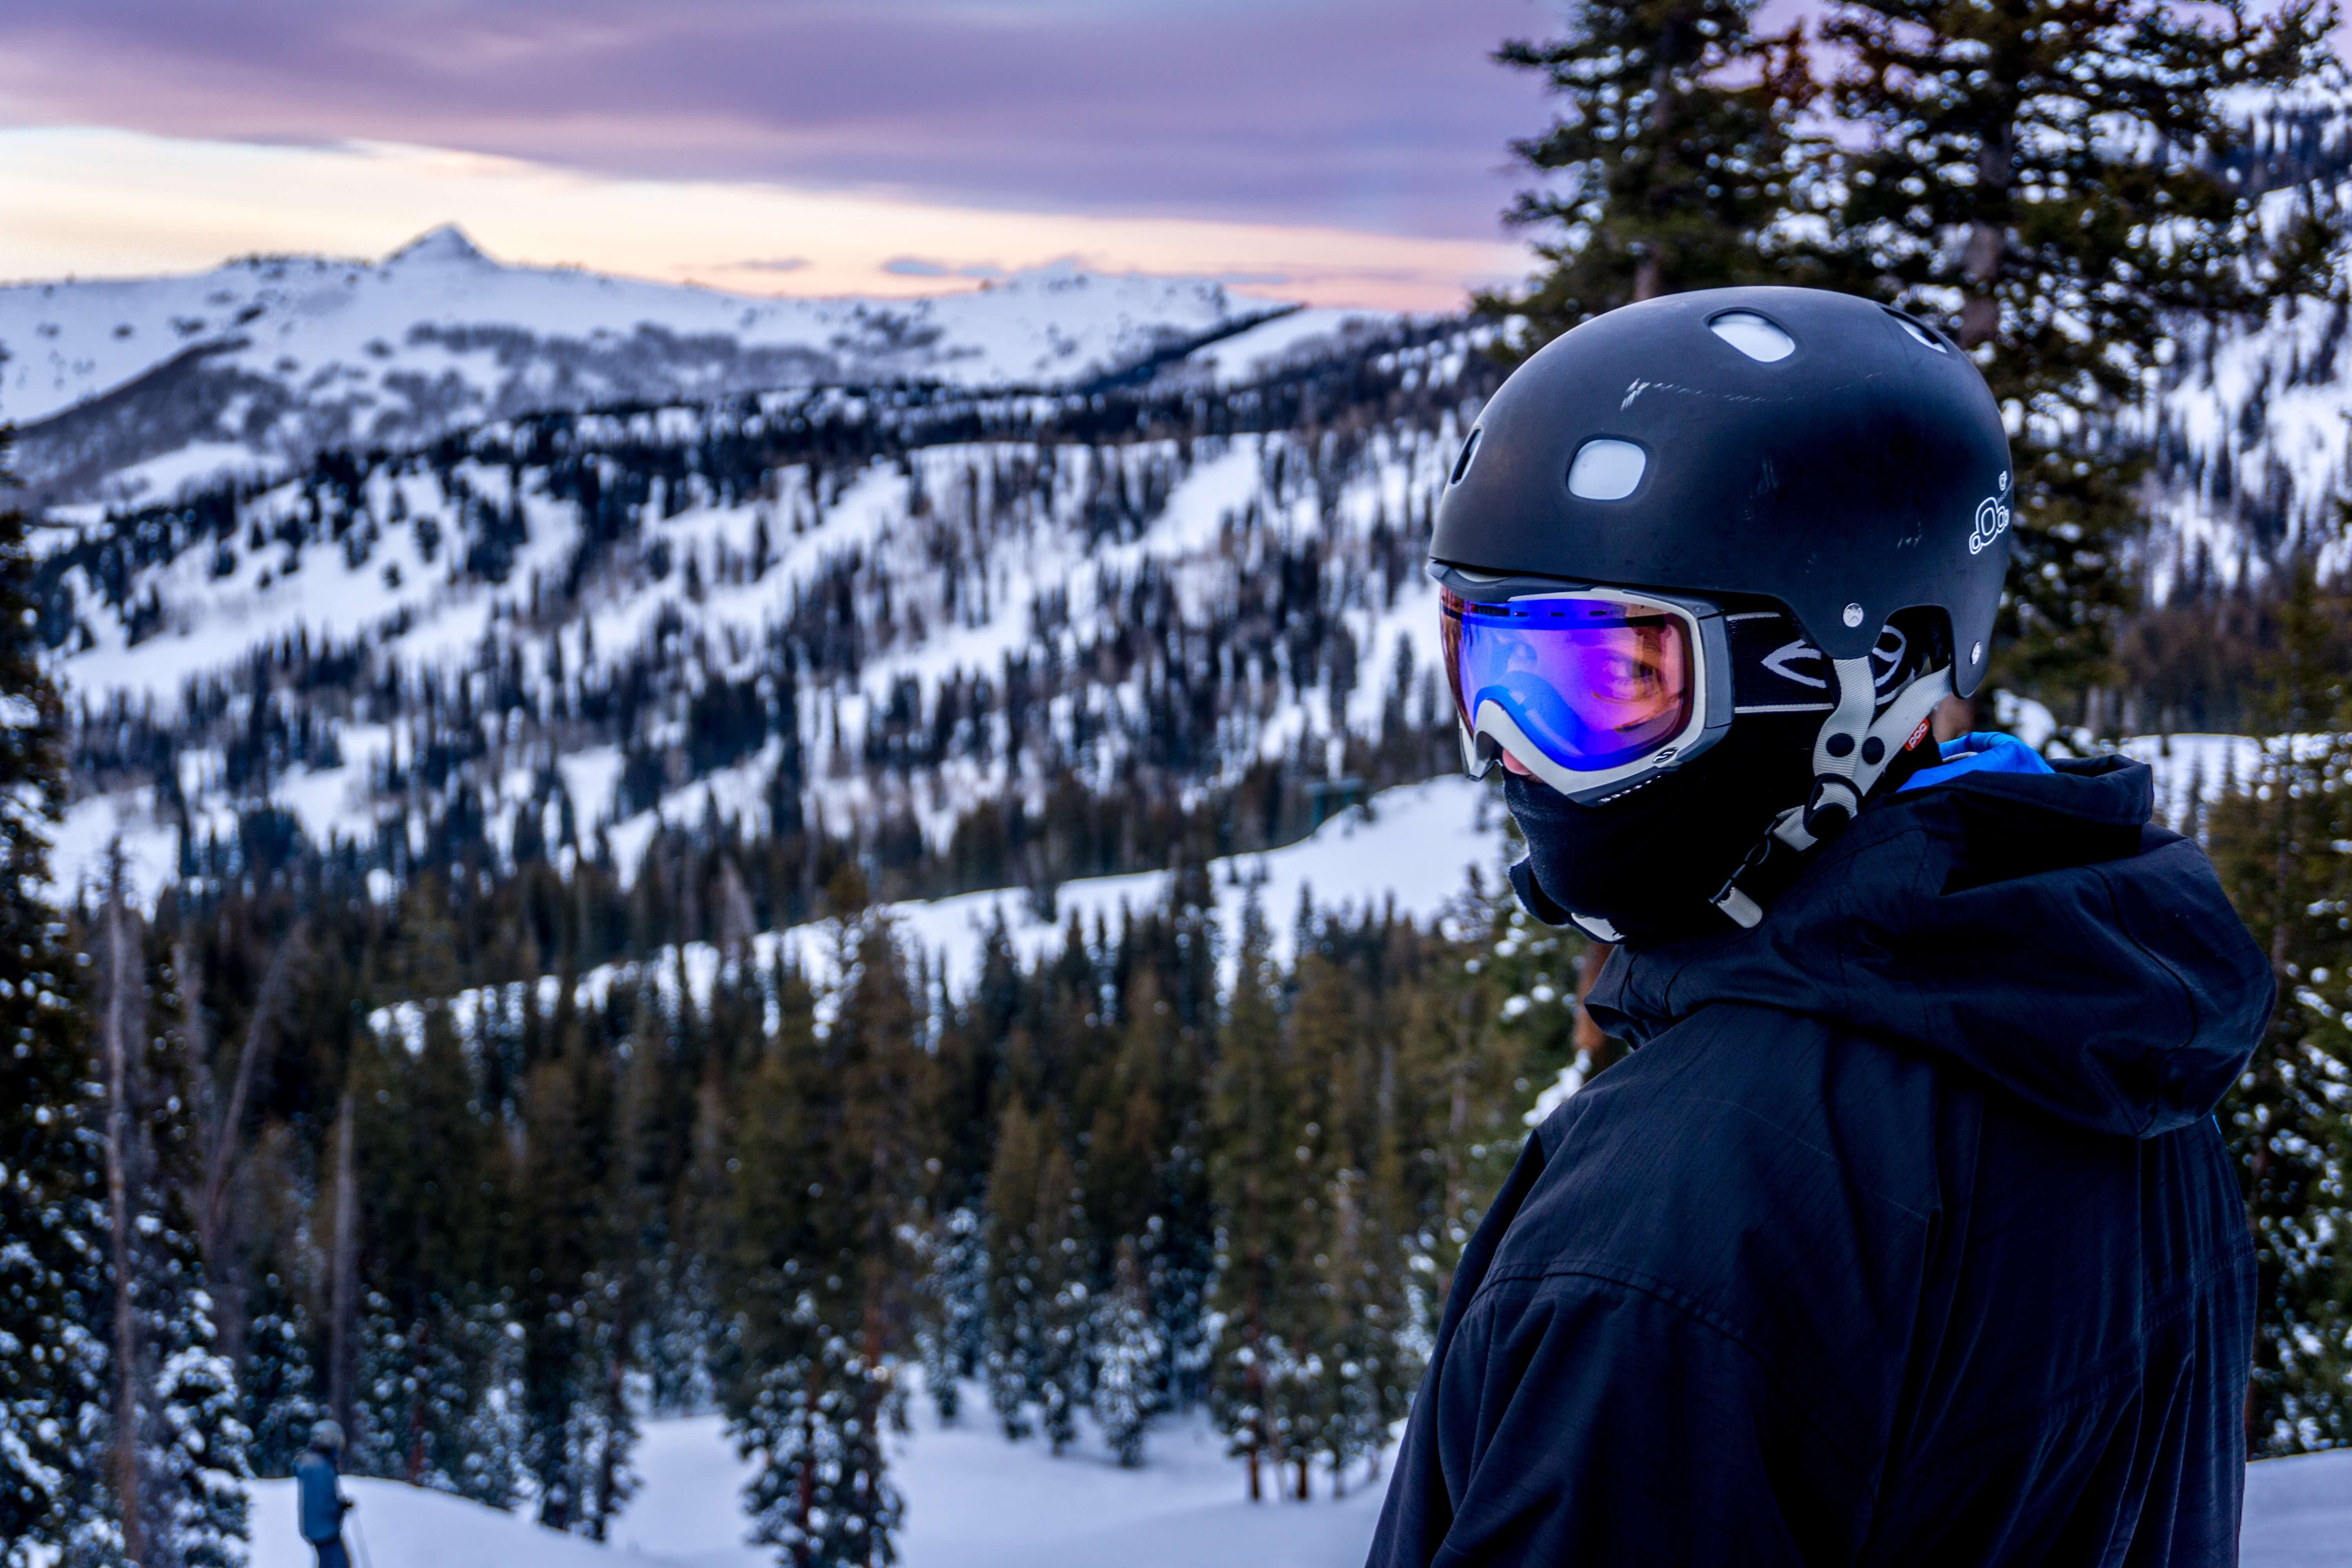 Best ski helmet headphones